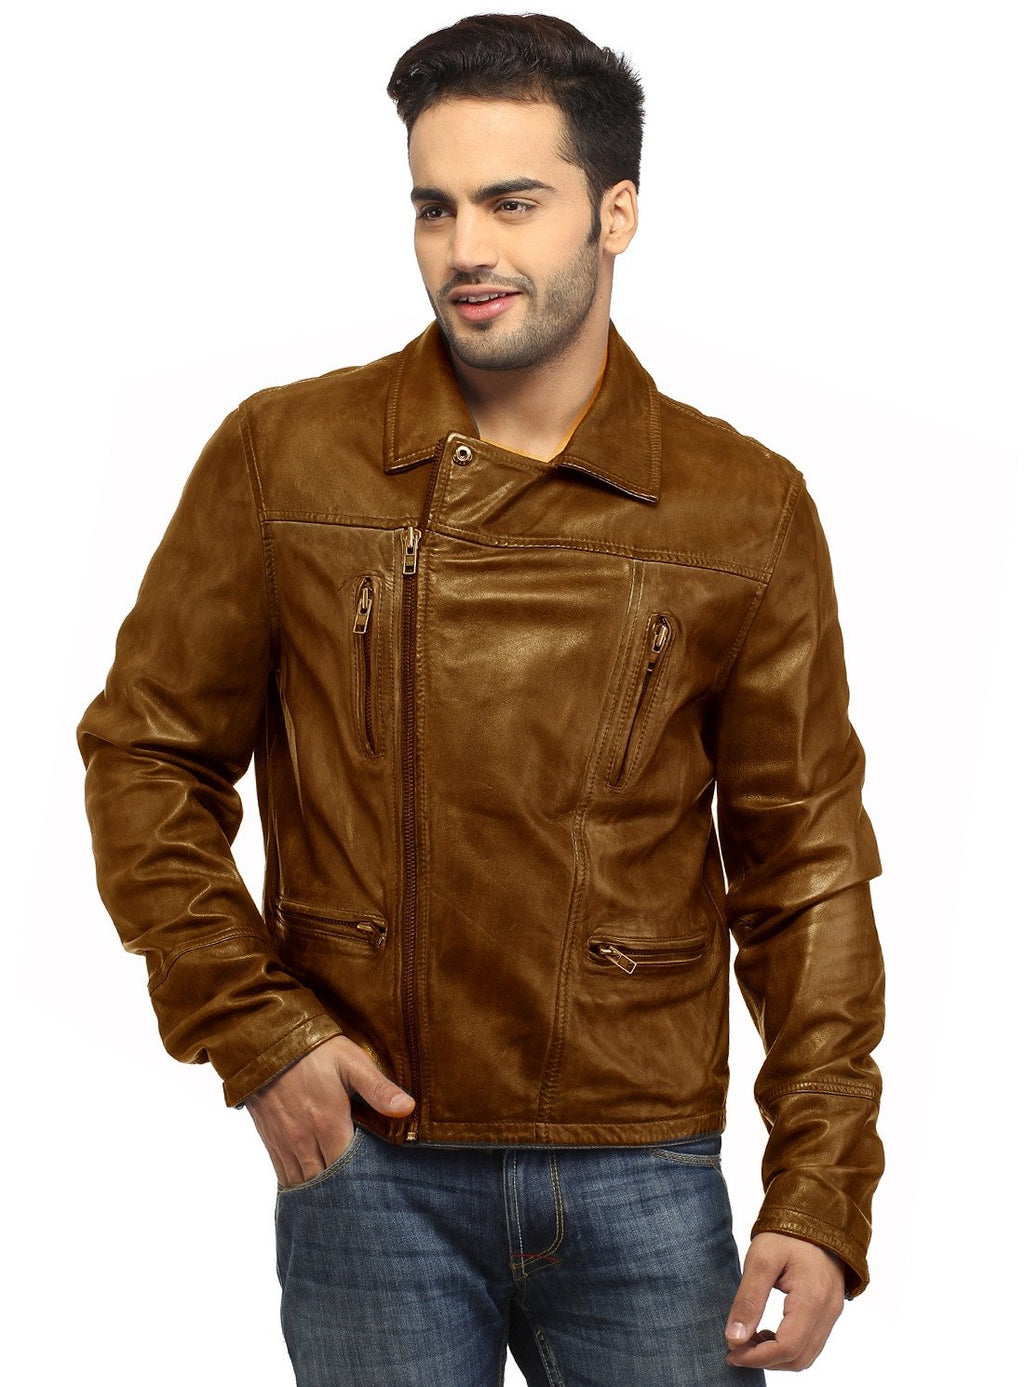 Men Leather Hand Padded Lamb Vintage MotorCycle Biker Jacket XS / LEATHER / Tan Brown, Men Jacket - CrabRocks, LeatherfashionOnline  - 1